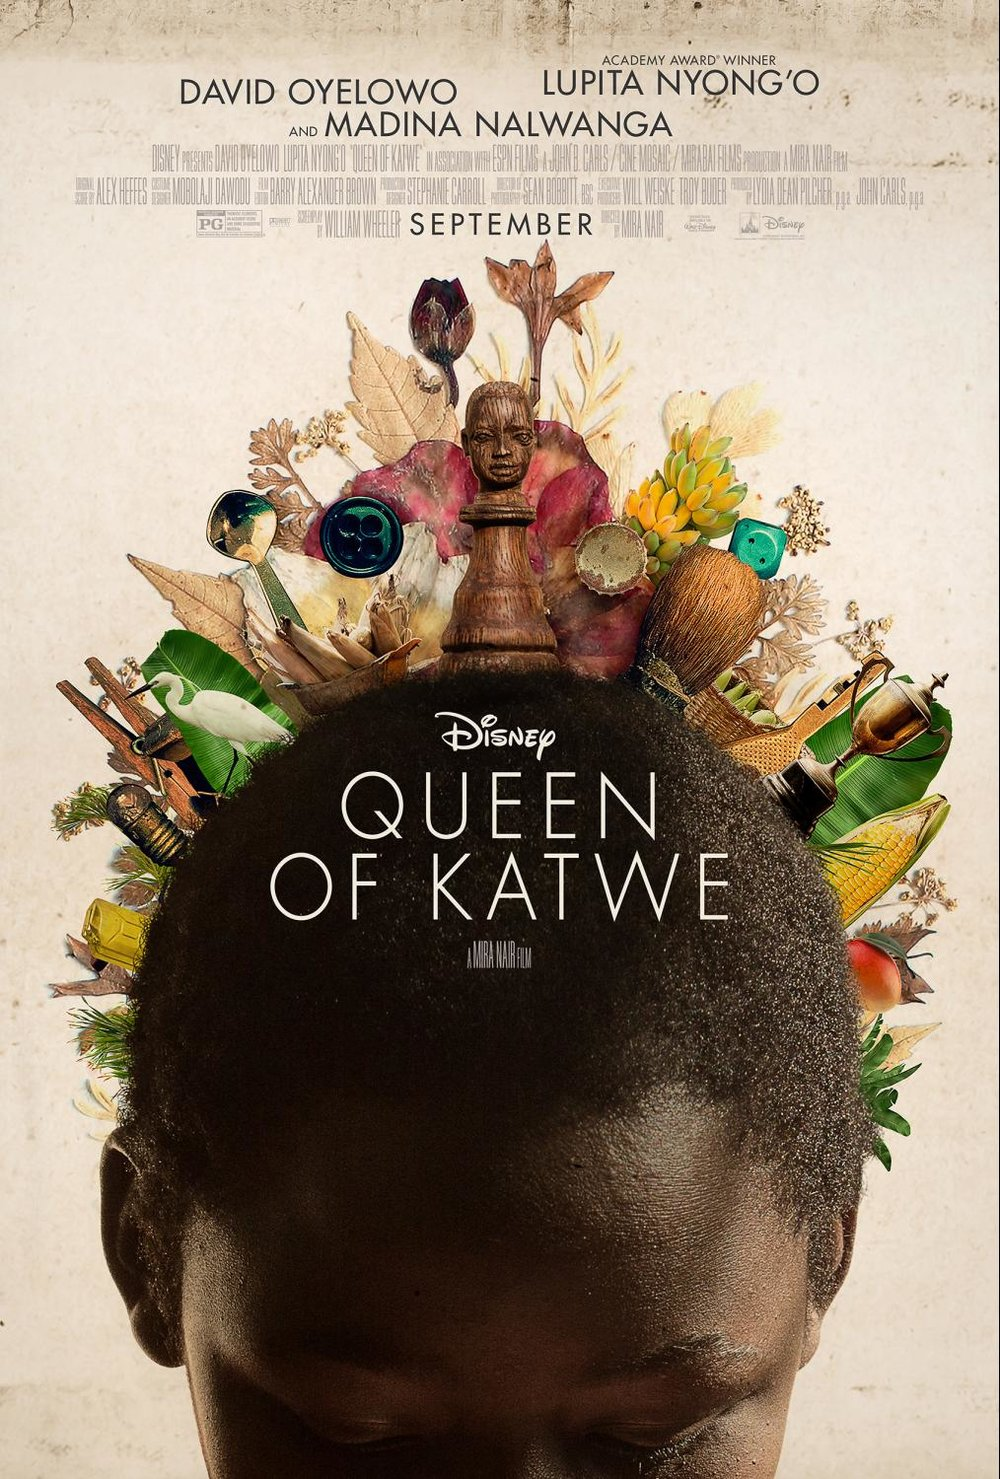 QueenOfKatwe5730df557db65.jpg